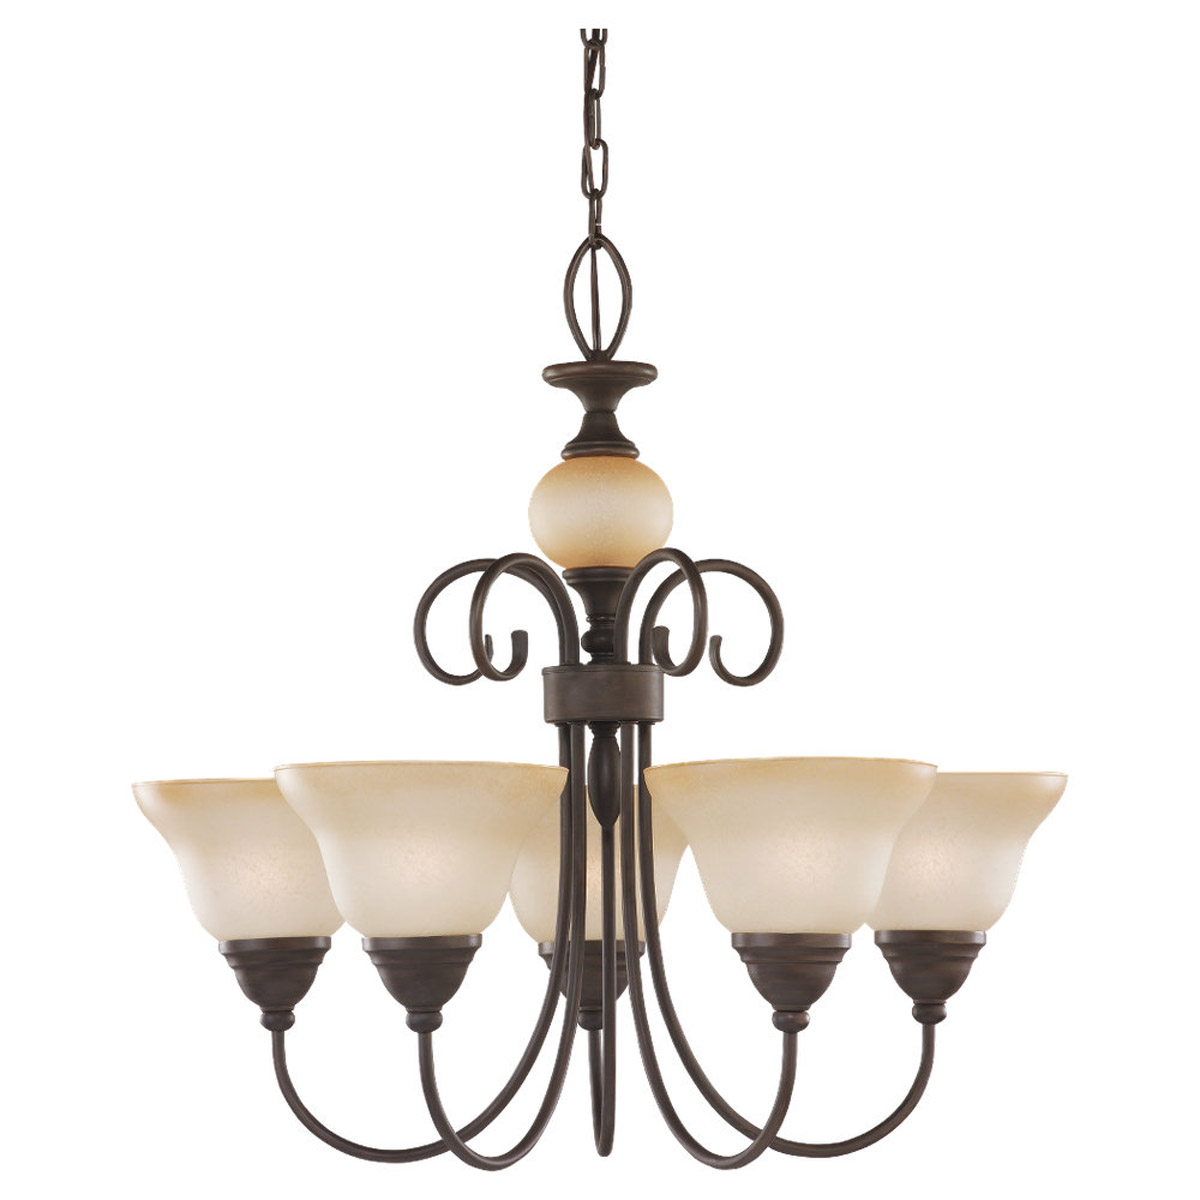 Sea Gull Lighting Montclaire 5 Light Chandelier in Olde Iron 31106-72 photo